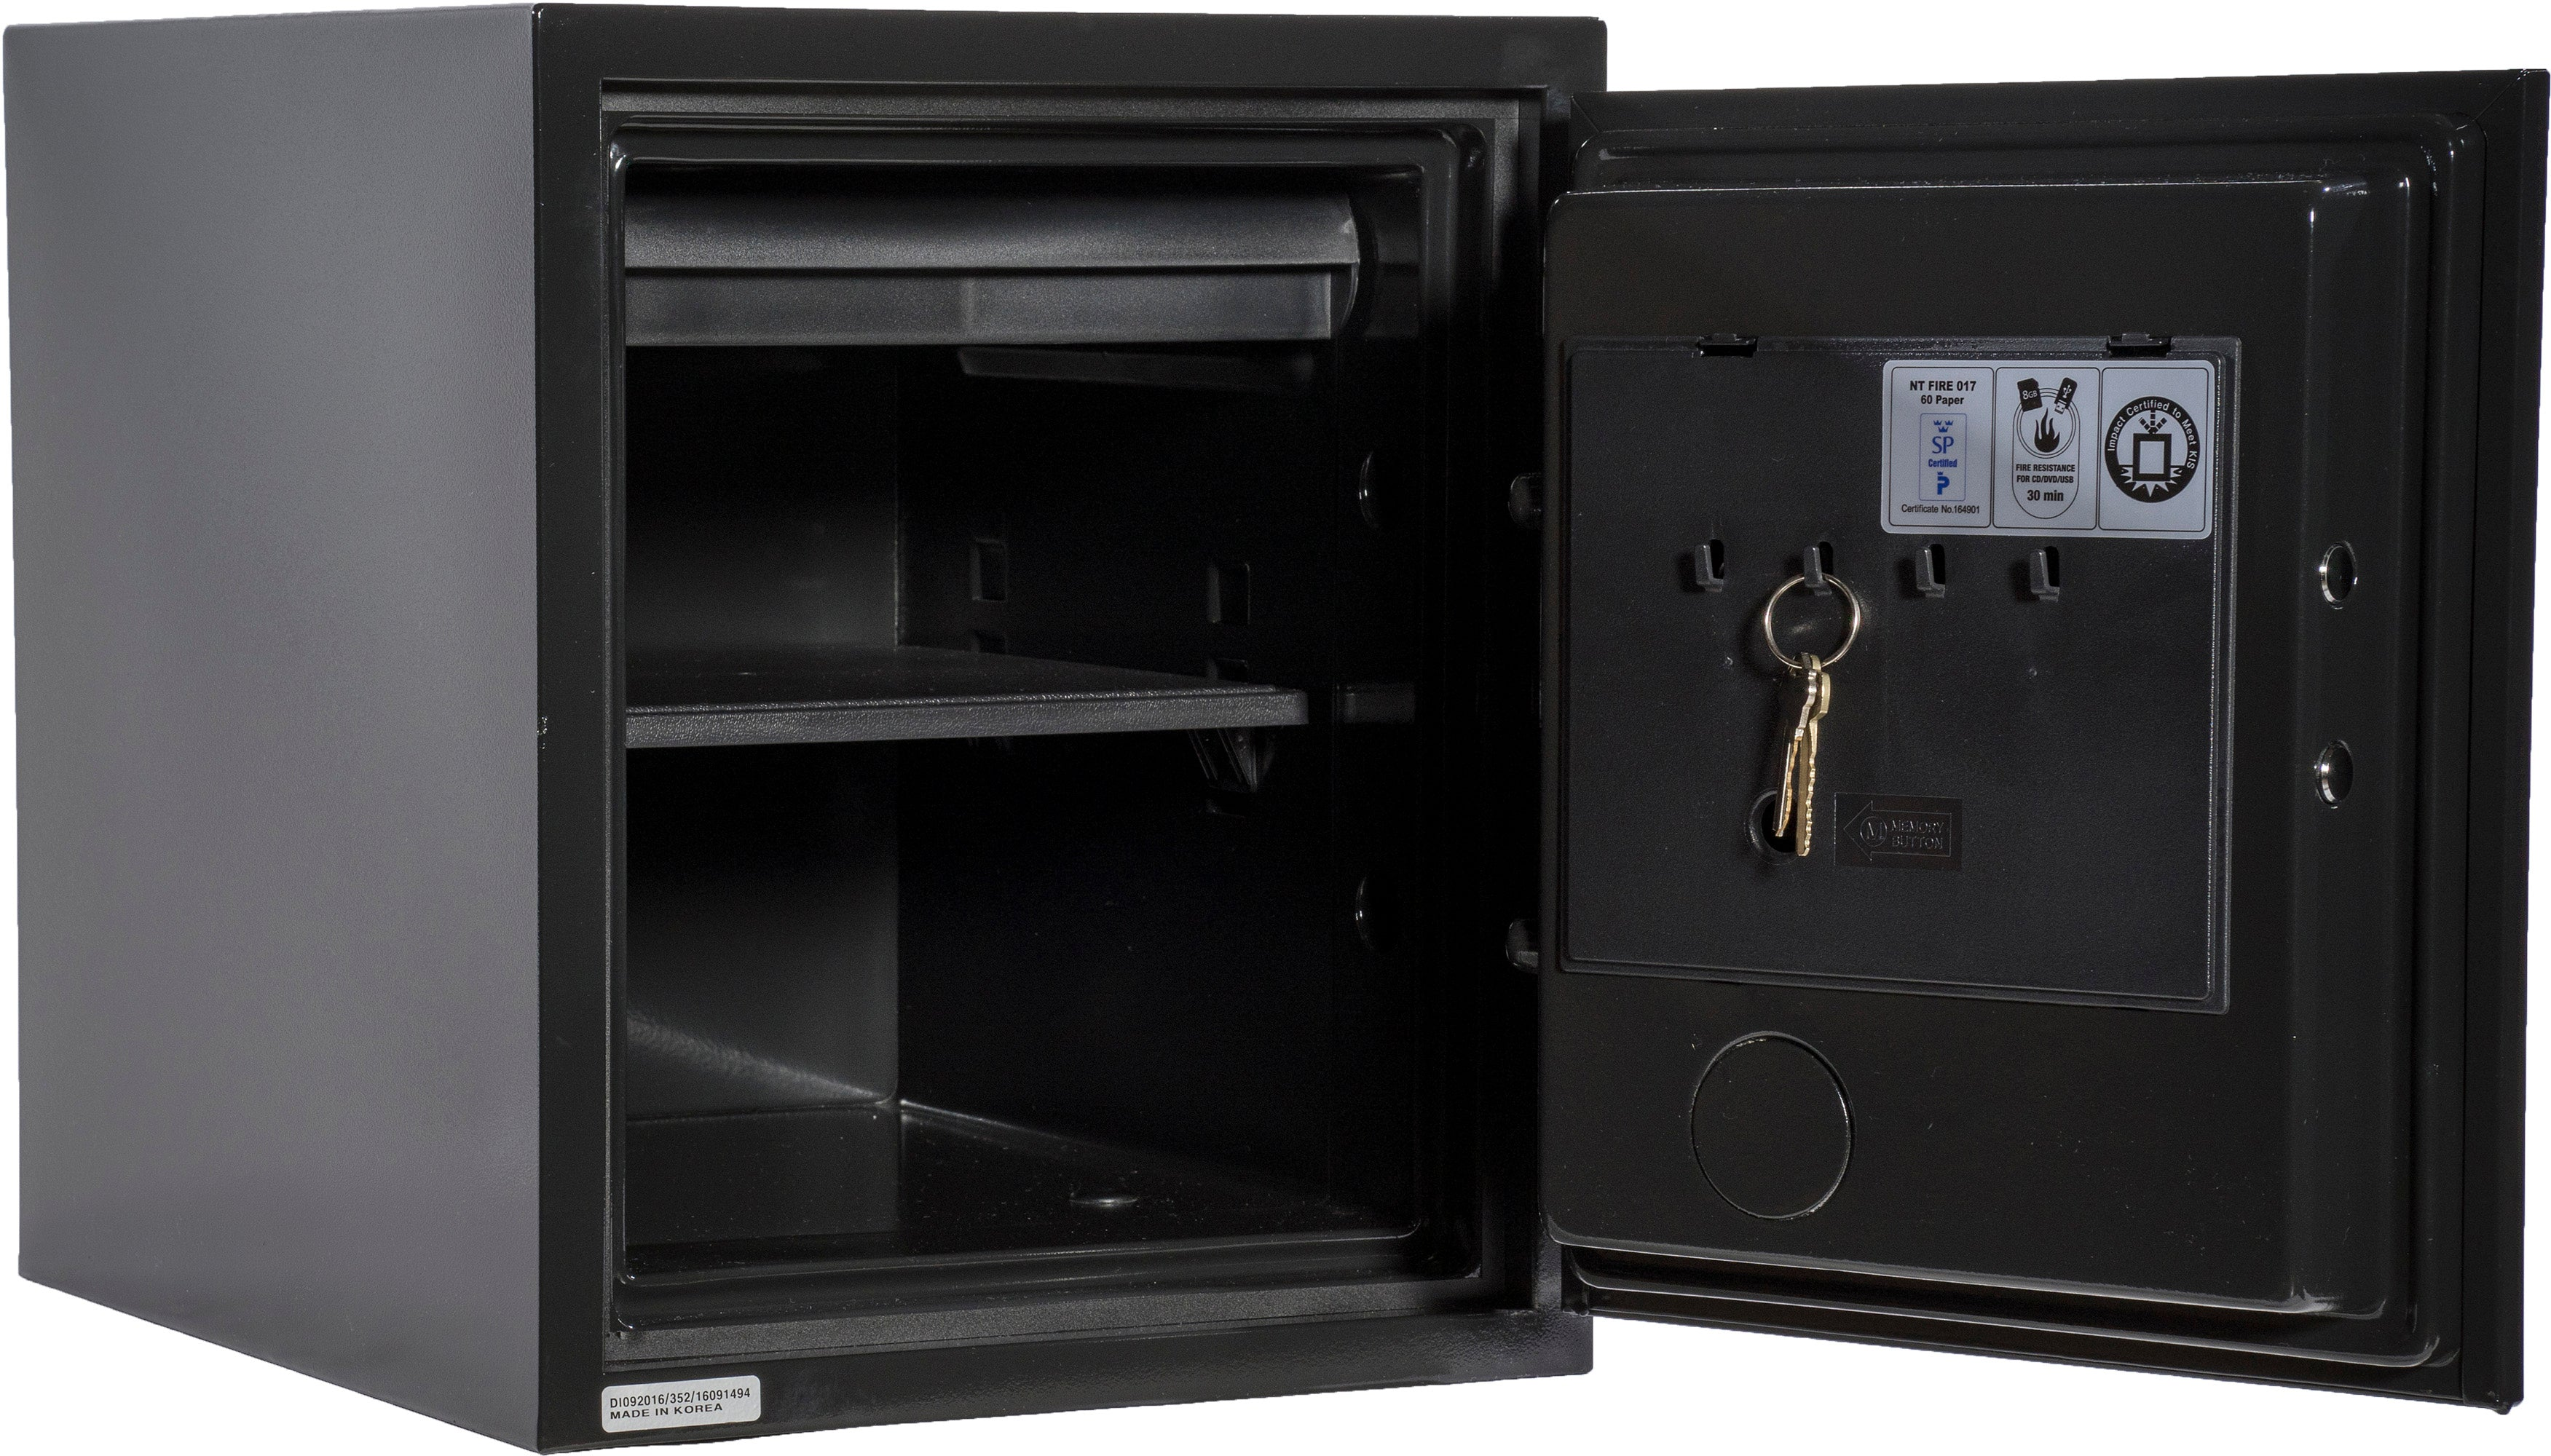 Olympian Digital Fire Resistant Safe 0.87 cu ft